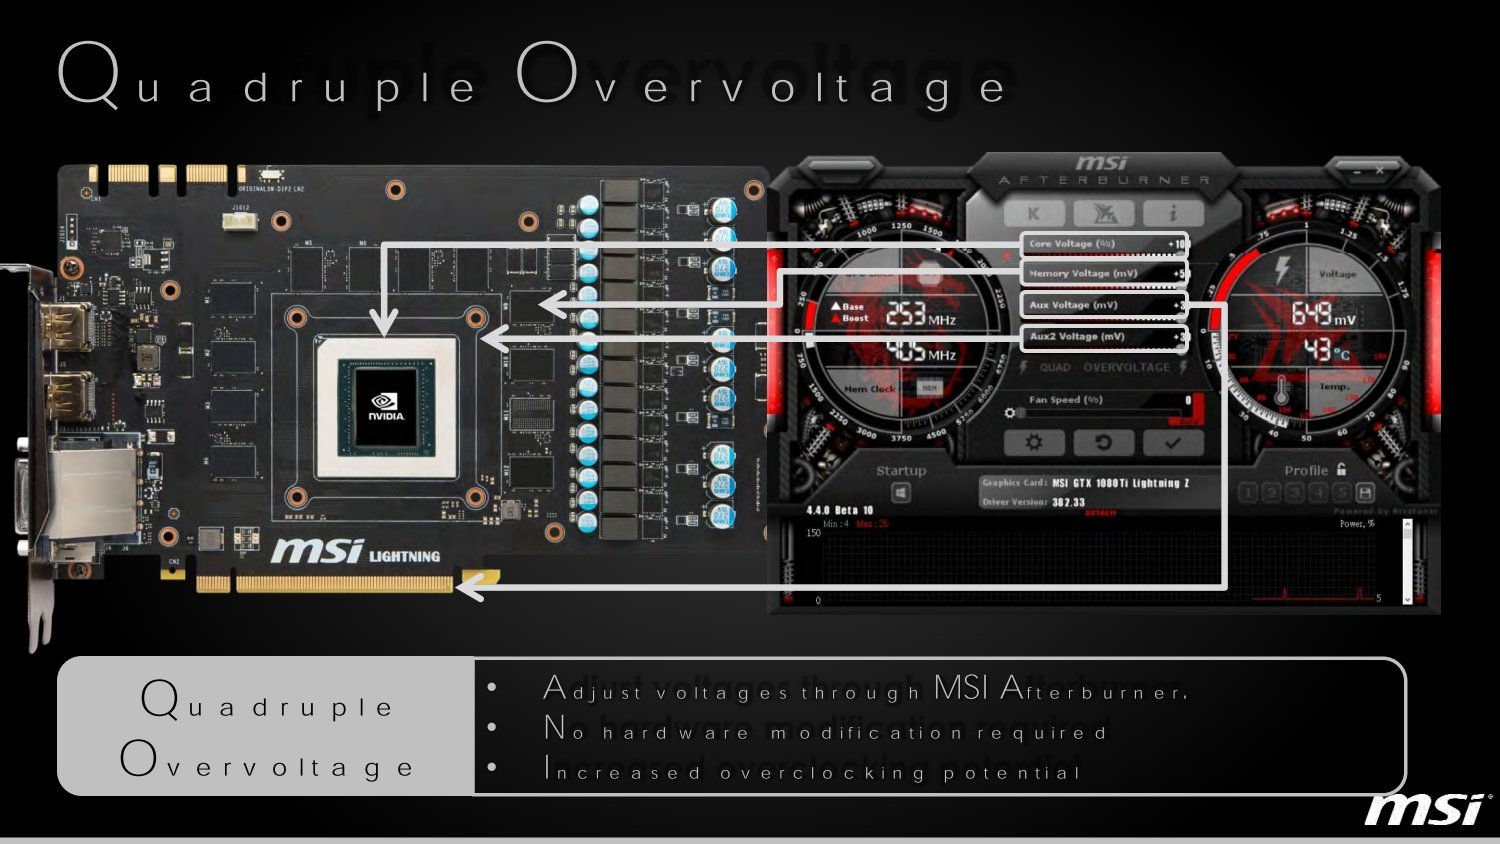 """Quadruple Overvoltage"""